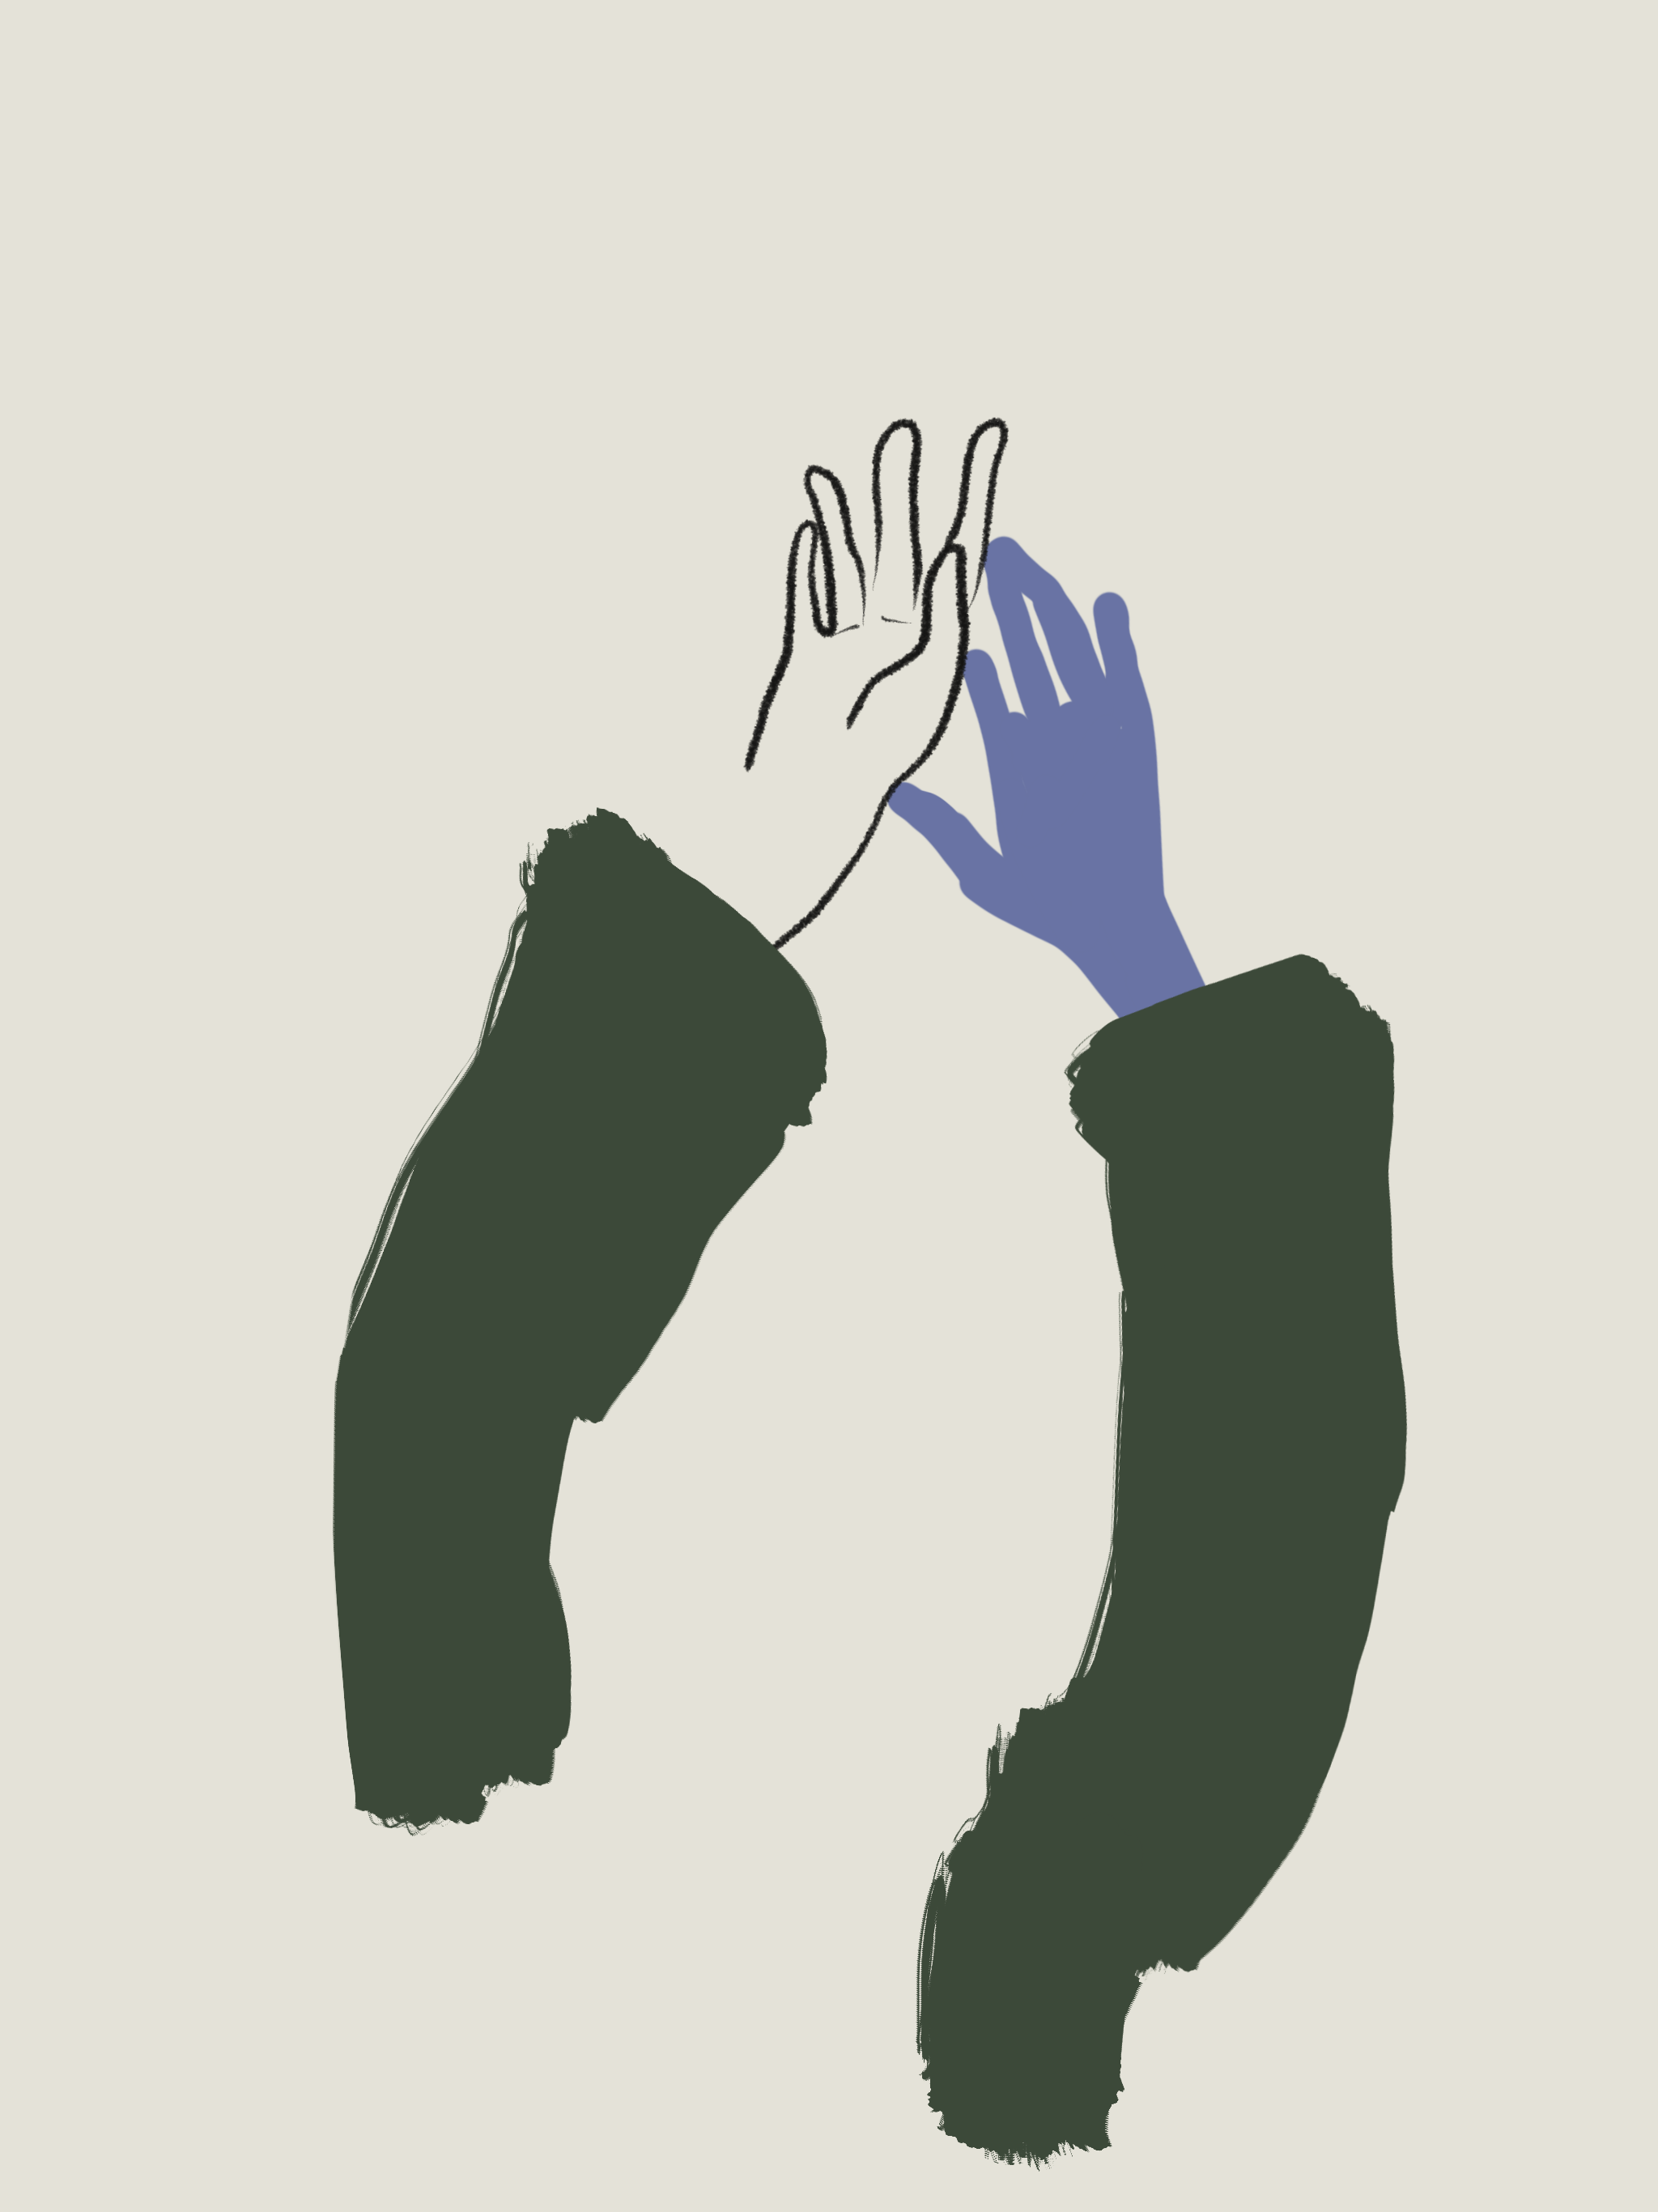 Hands in the air - illustration by Silvana Mariani